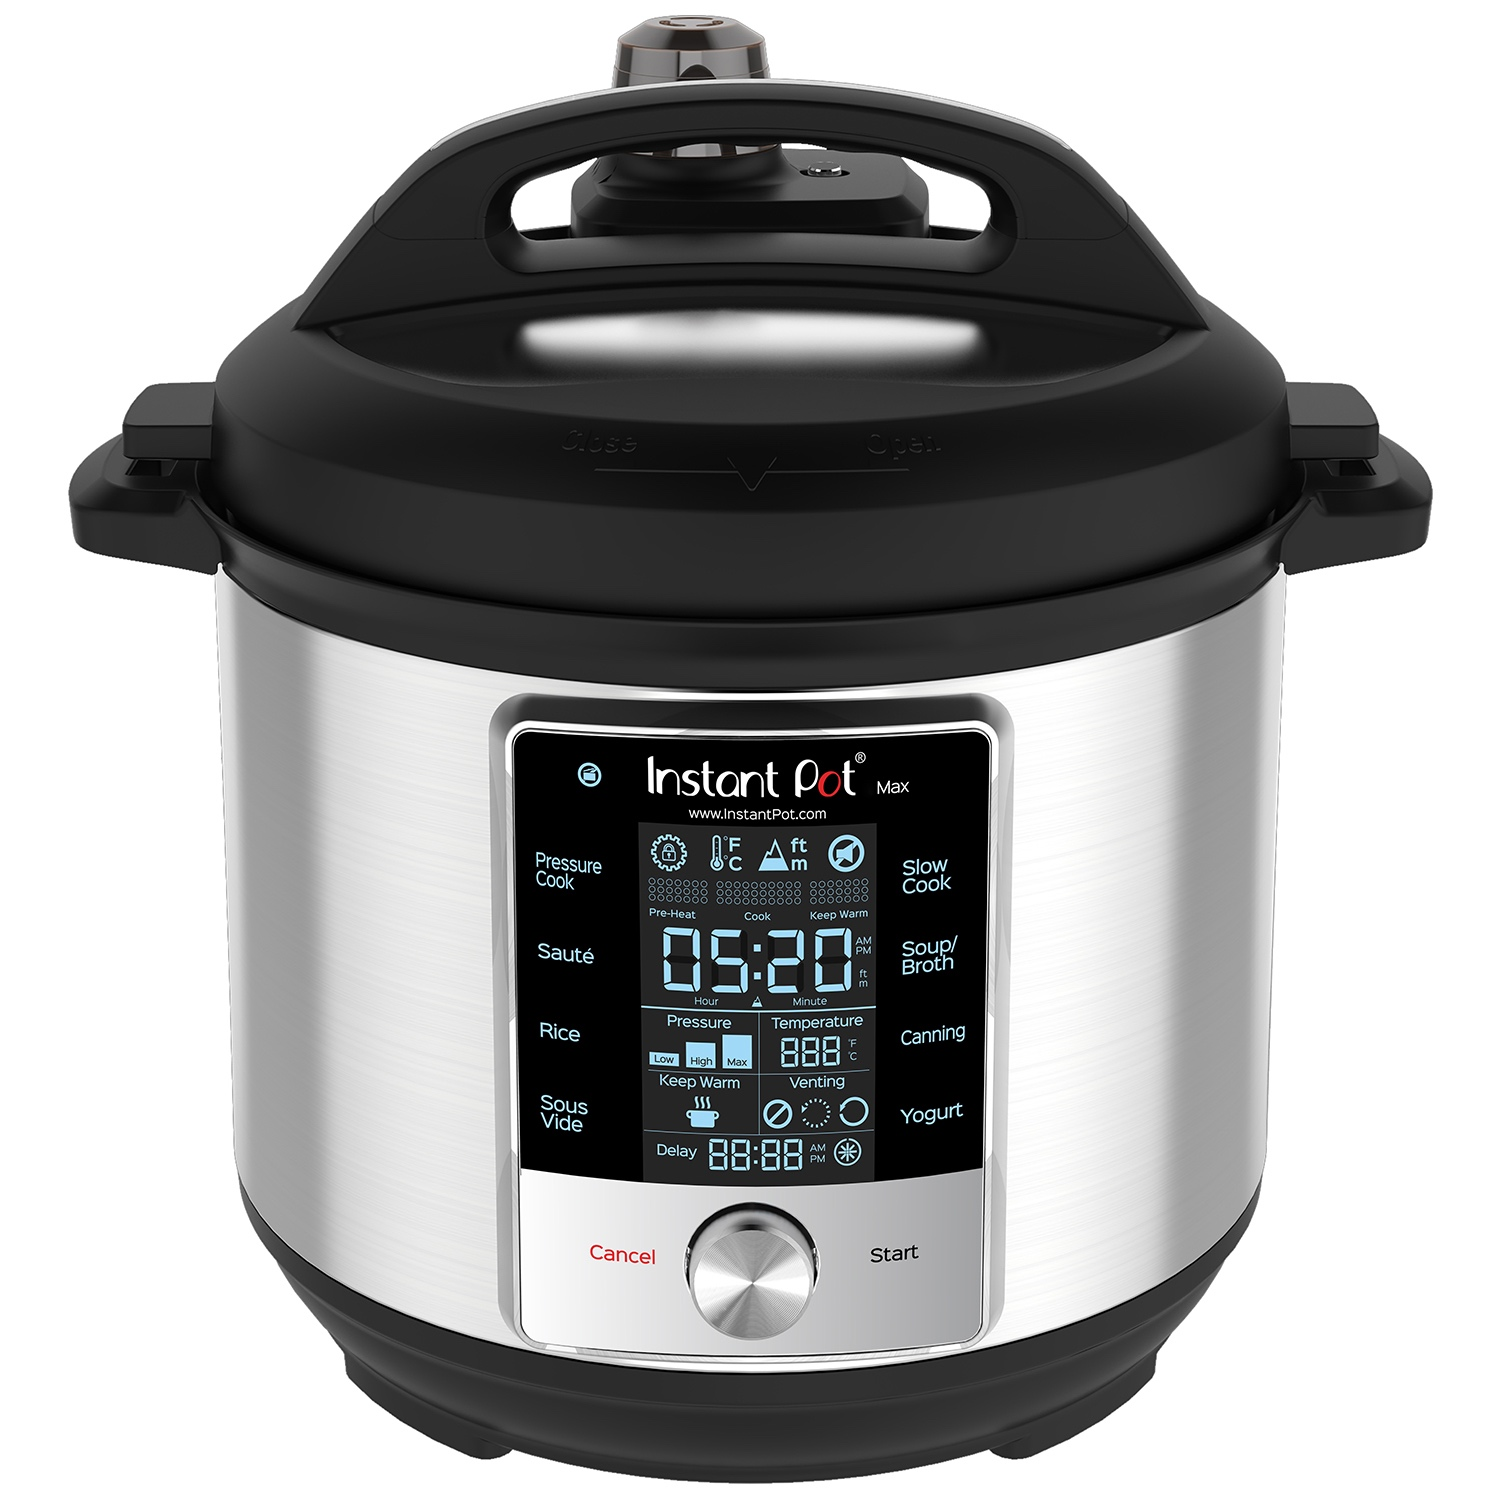 Instant Pot - Did you know that this god-damn pressure cooker was the most gifted product last Christmas? I am gratefully one of those people who had one under the tree, and I was quickly converted to the the sheer genius of this machine. The Instant Pot's cult following isn't surprising after discovering how much less time I was spending in the kitchen after work throwing together dinner. I can toss in onion, carrot, celery, garlic, herbs, stock, and raw chicken and have chicken soup in 20 handsfree minutes. The possibilities with this tool are endless with all of its functions, most of which I have hardly scratched the surface. Let me know if you'd like to see some of my most used and loved Instant Pot recipes here on the blog.